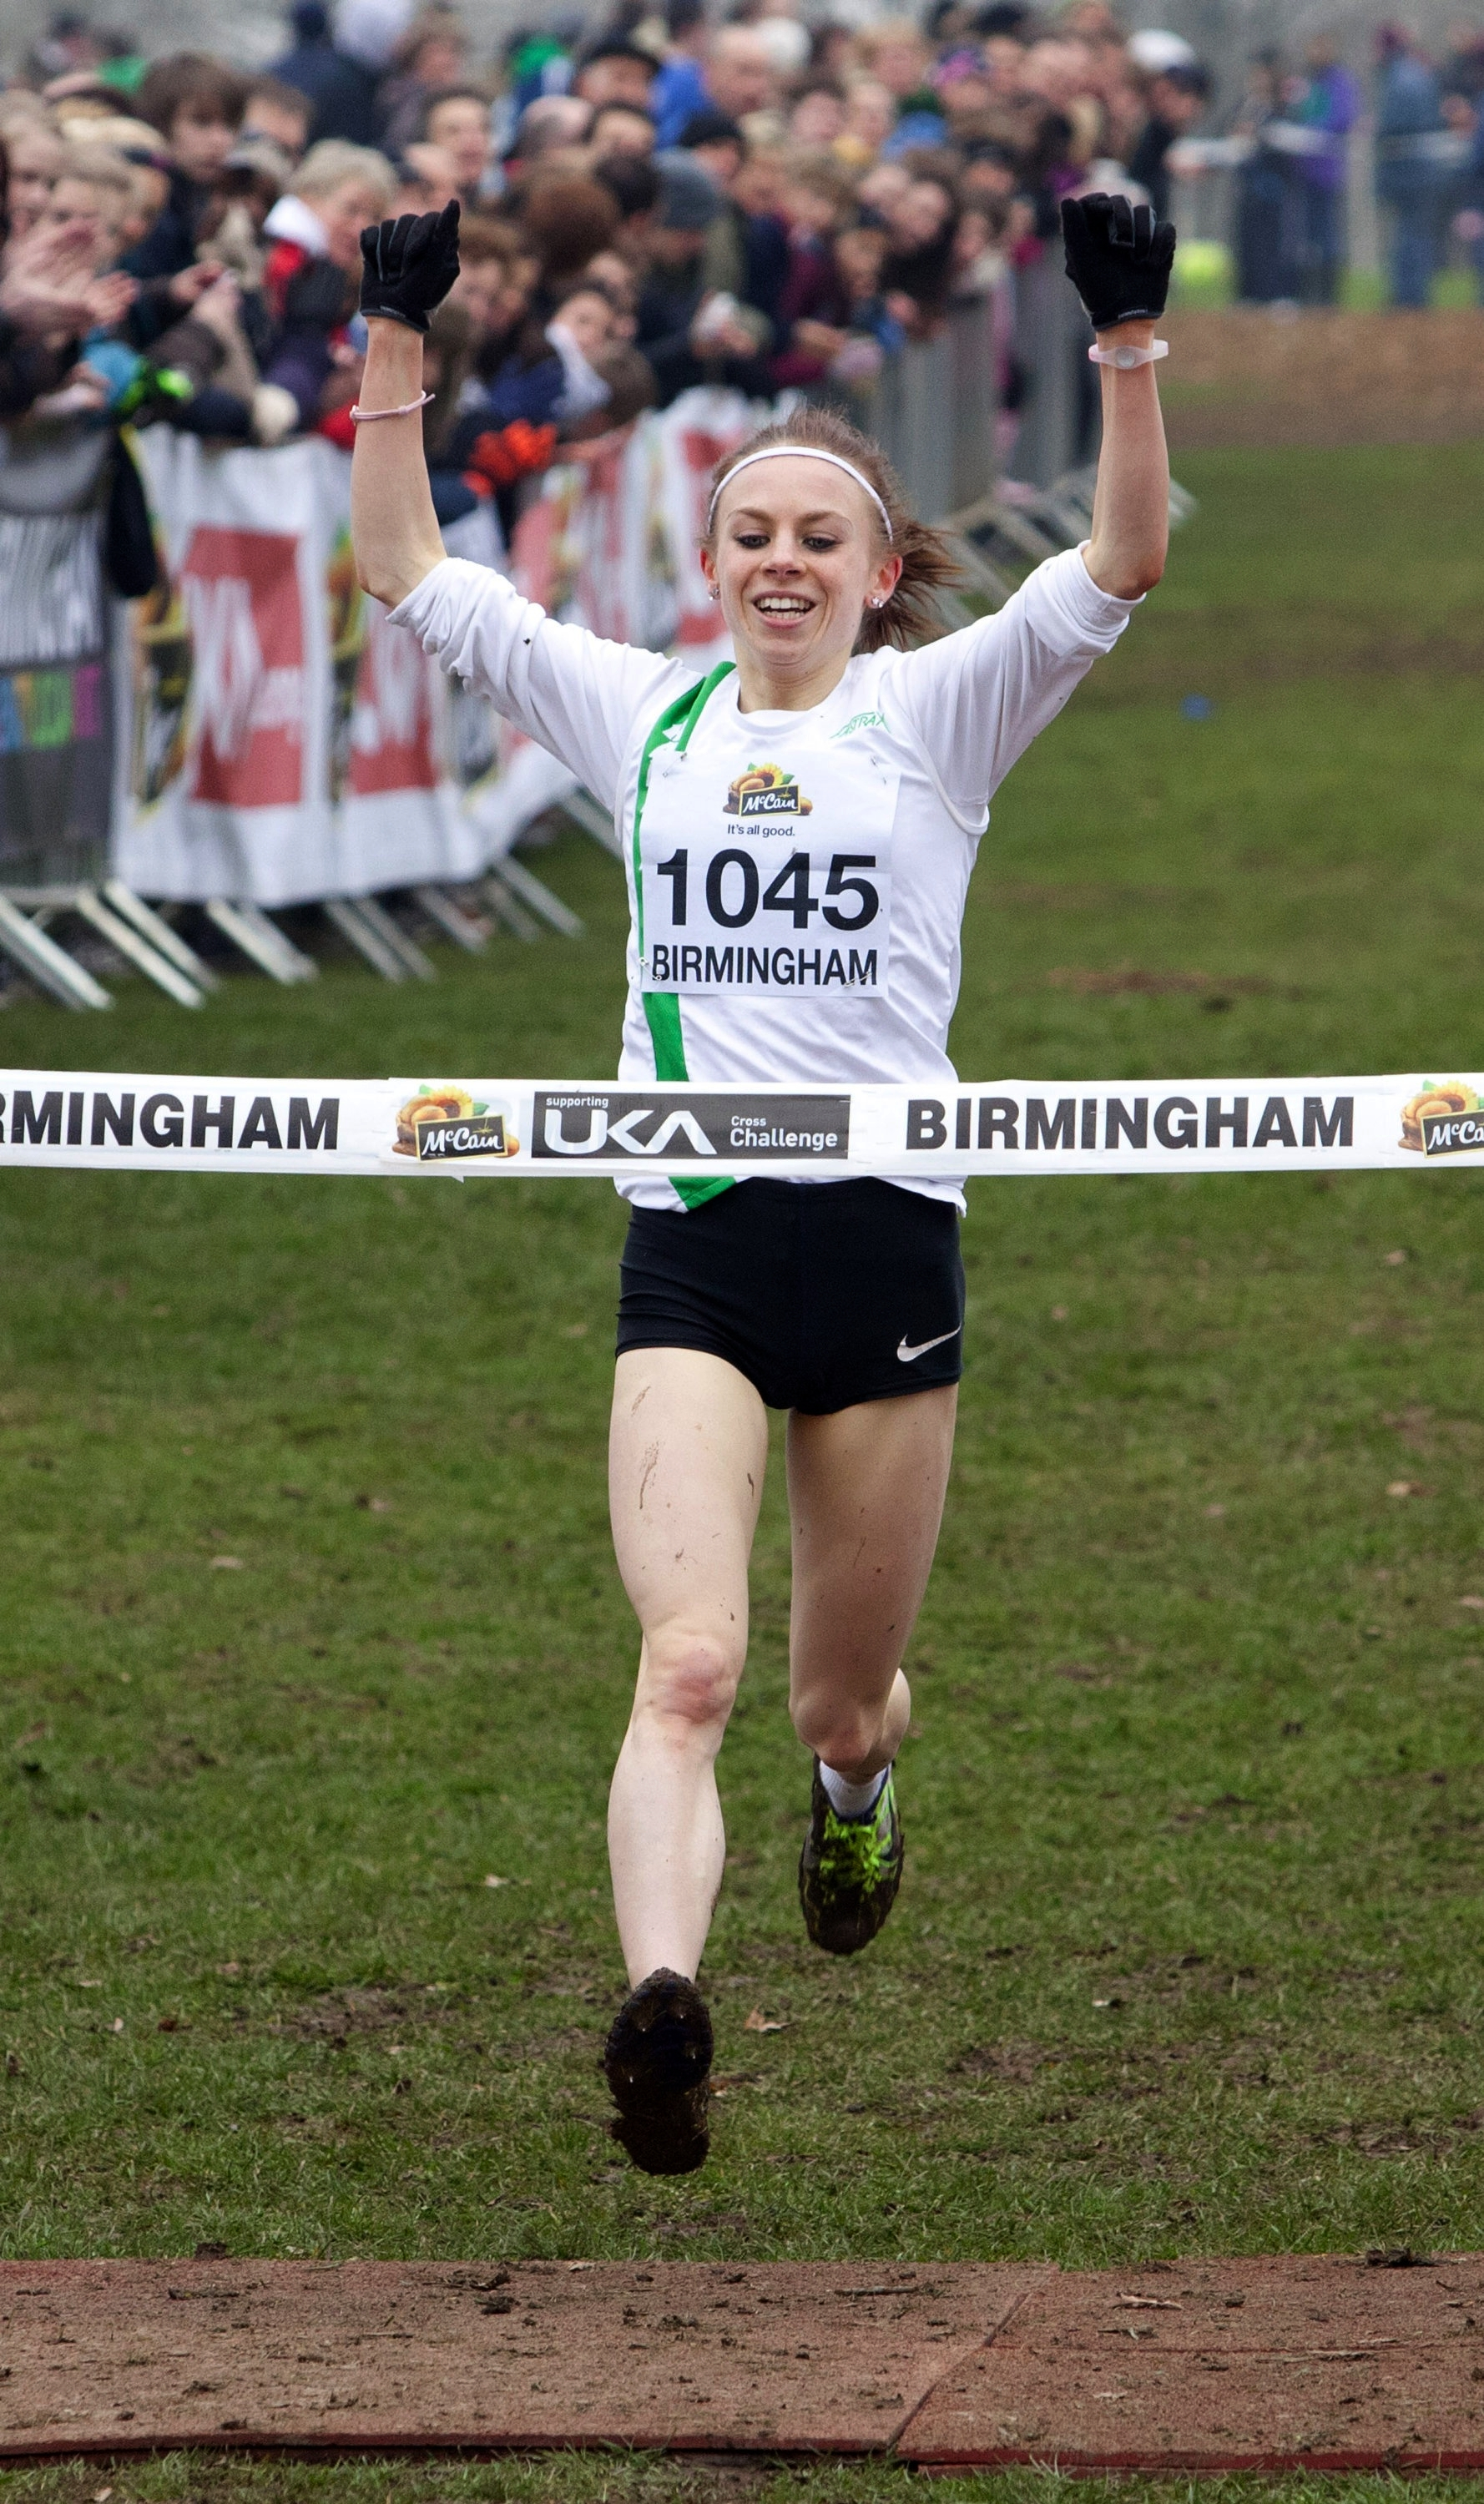 Charlotte Purdue aims for gold medal at European Cross Country Championships